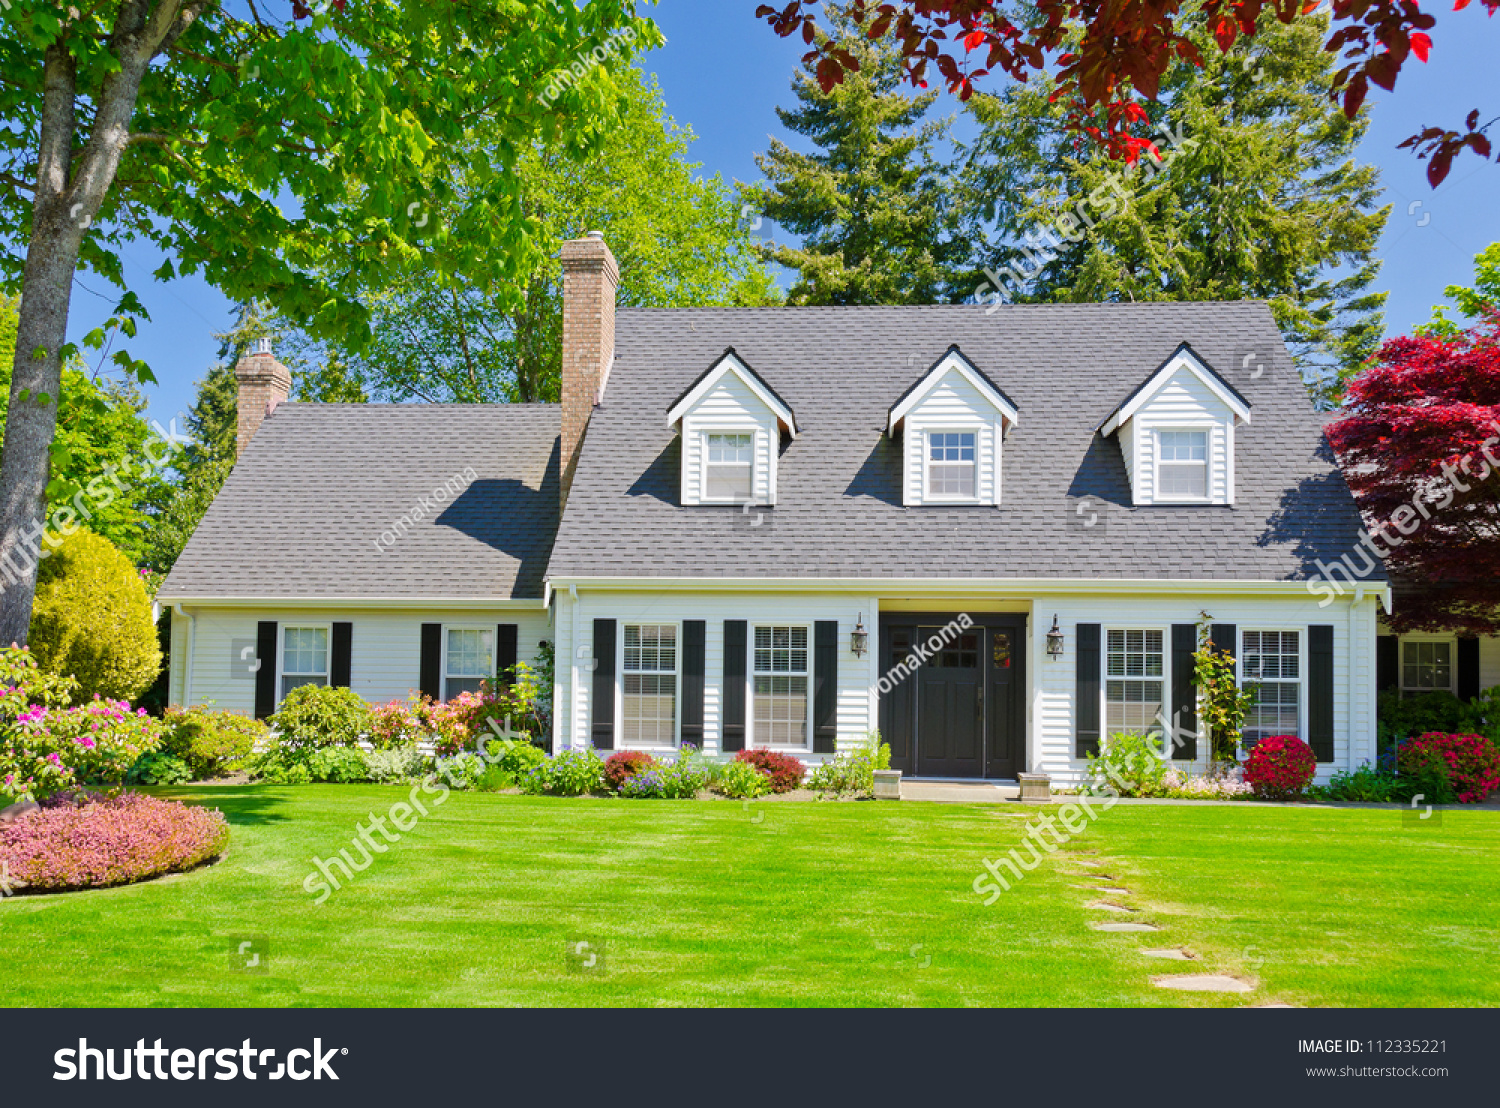 Custom Built Luxury House Nicely Trimmed Stock Photo